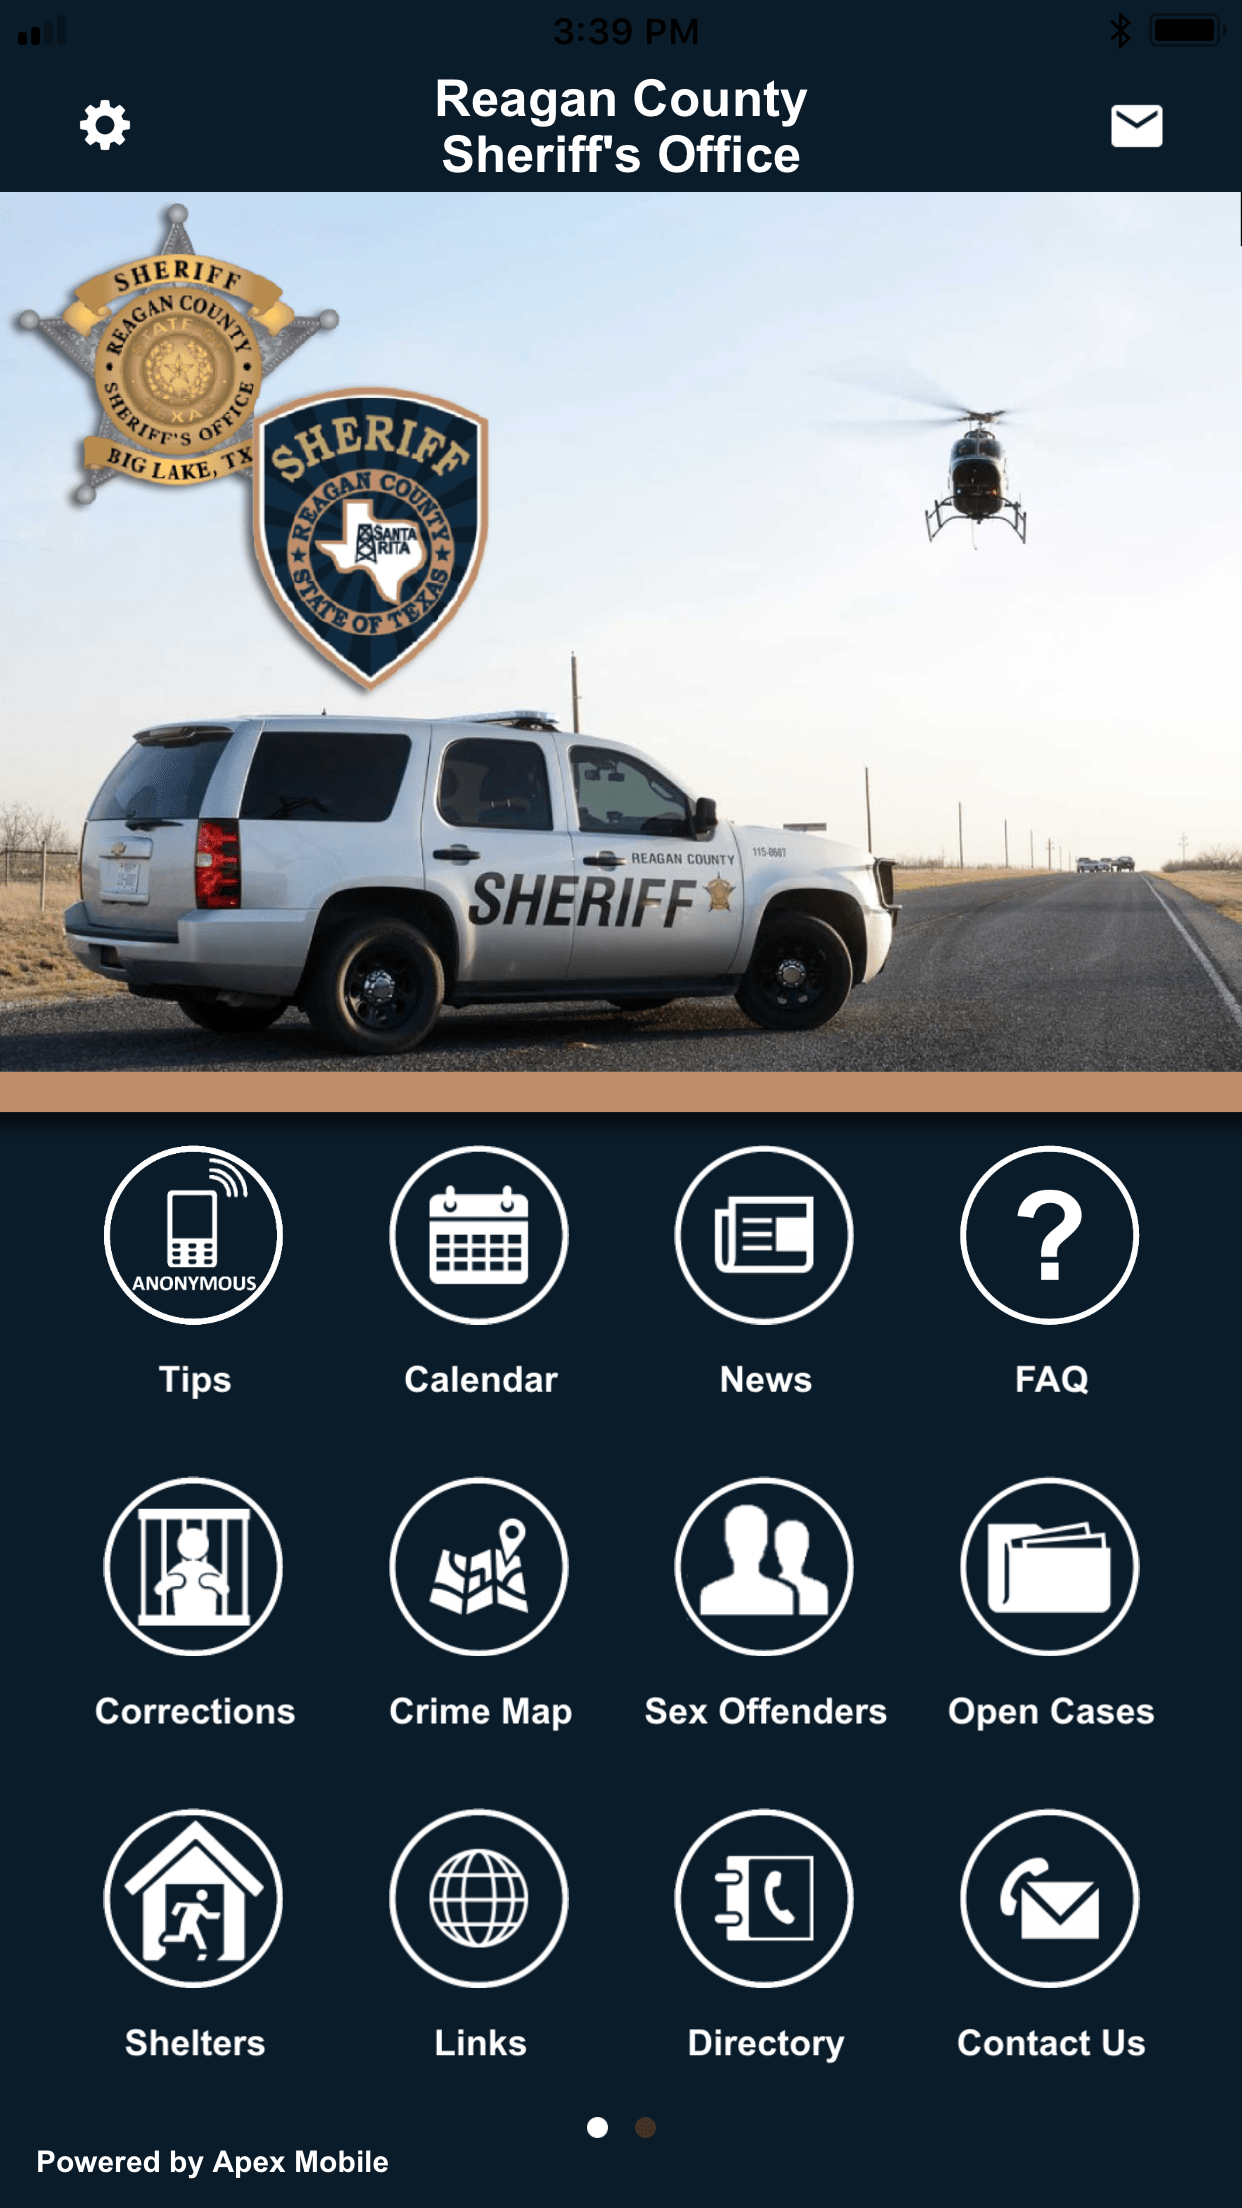 Reagan County Sheriff's Office Mobile App Screenshot